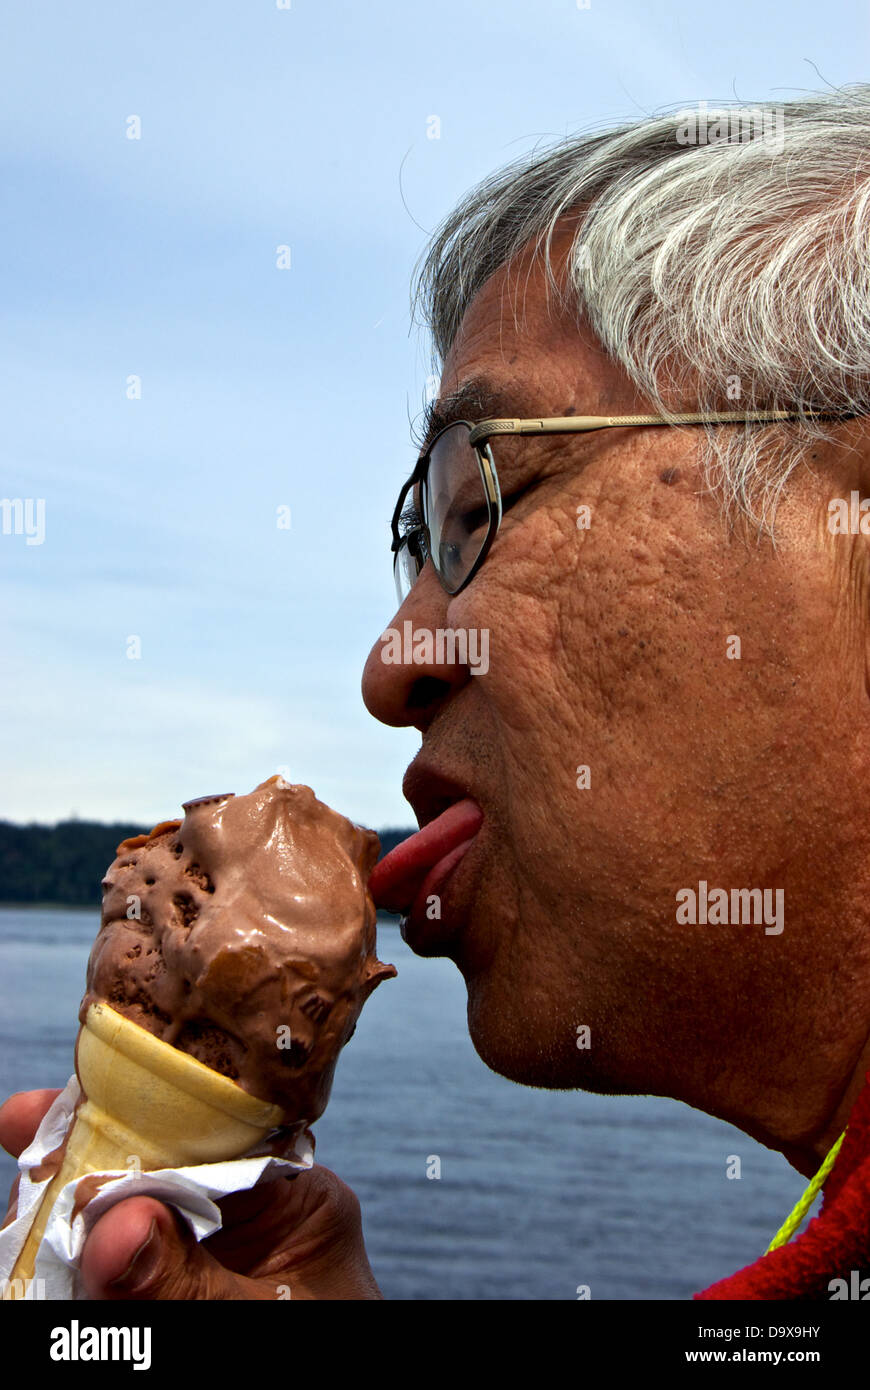 Chinese Man Eating Baby Size Chocolate Peanut Butter Chunk Ice Cream Cone Discovery Fishing Pier Food Concession Stand